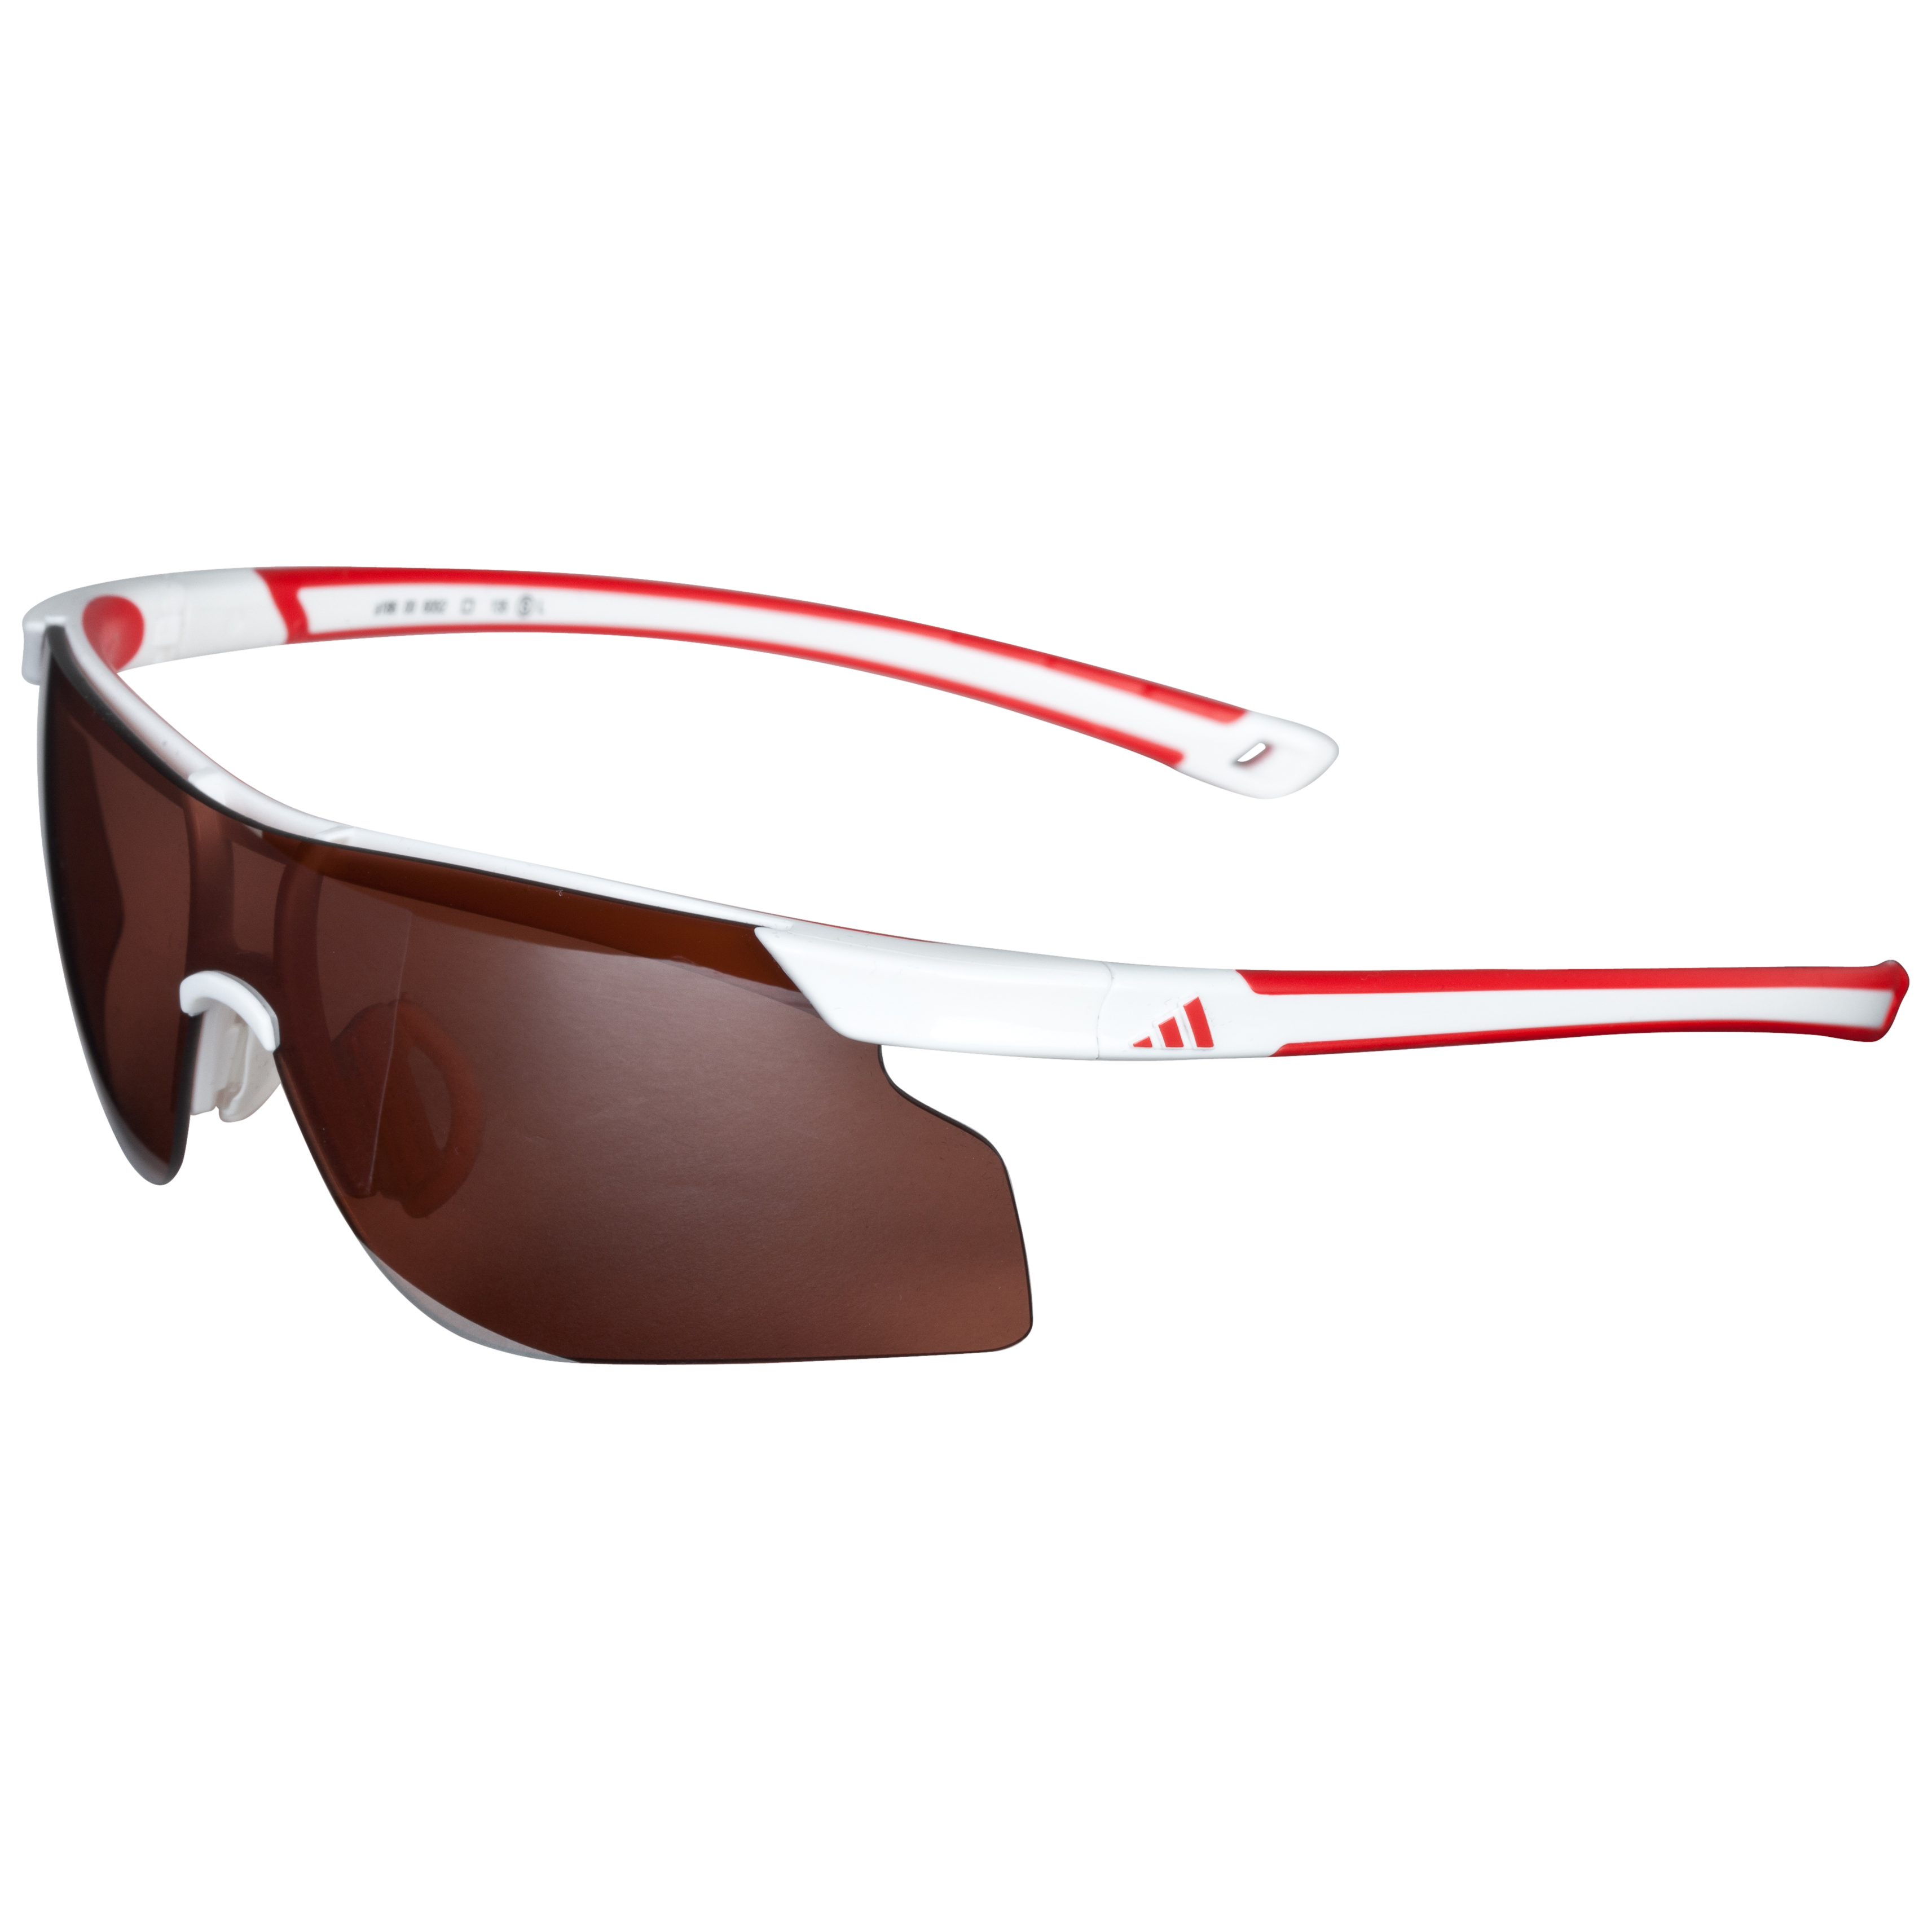 Adidas Adizero Tempo Sunglasses - Team GB (White/Red) - Small